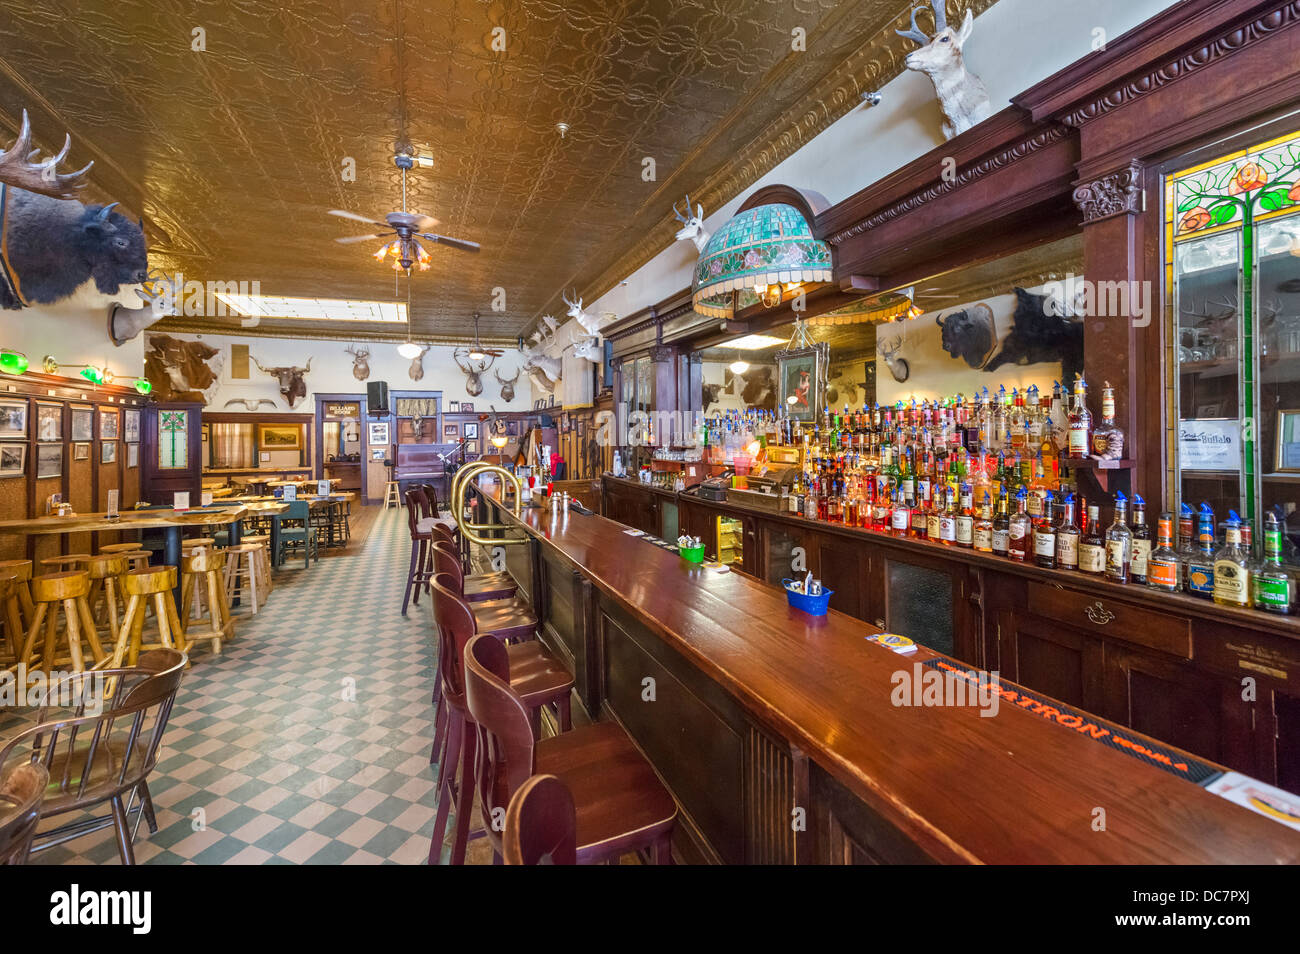 The saloon bar of the historic Occidental Hotel, Main Street, Buffalo, Wyoming, USA - Stock Image